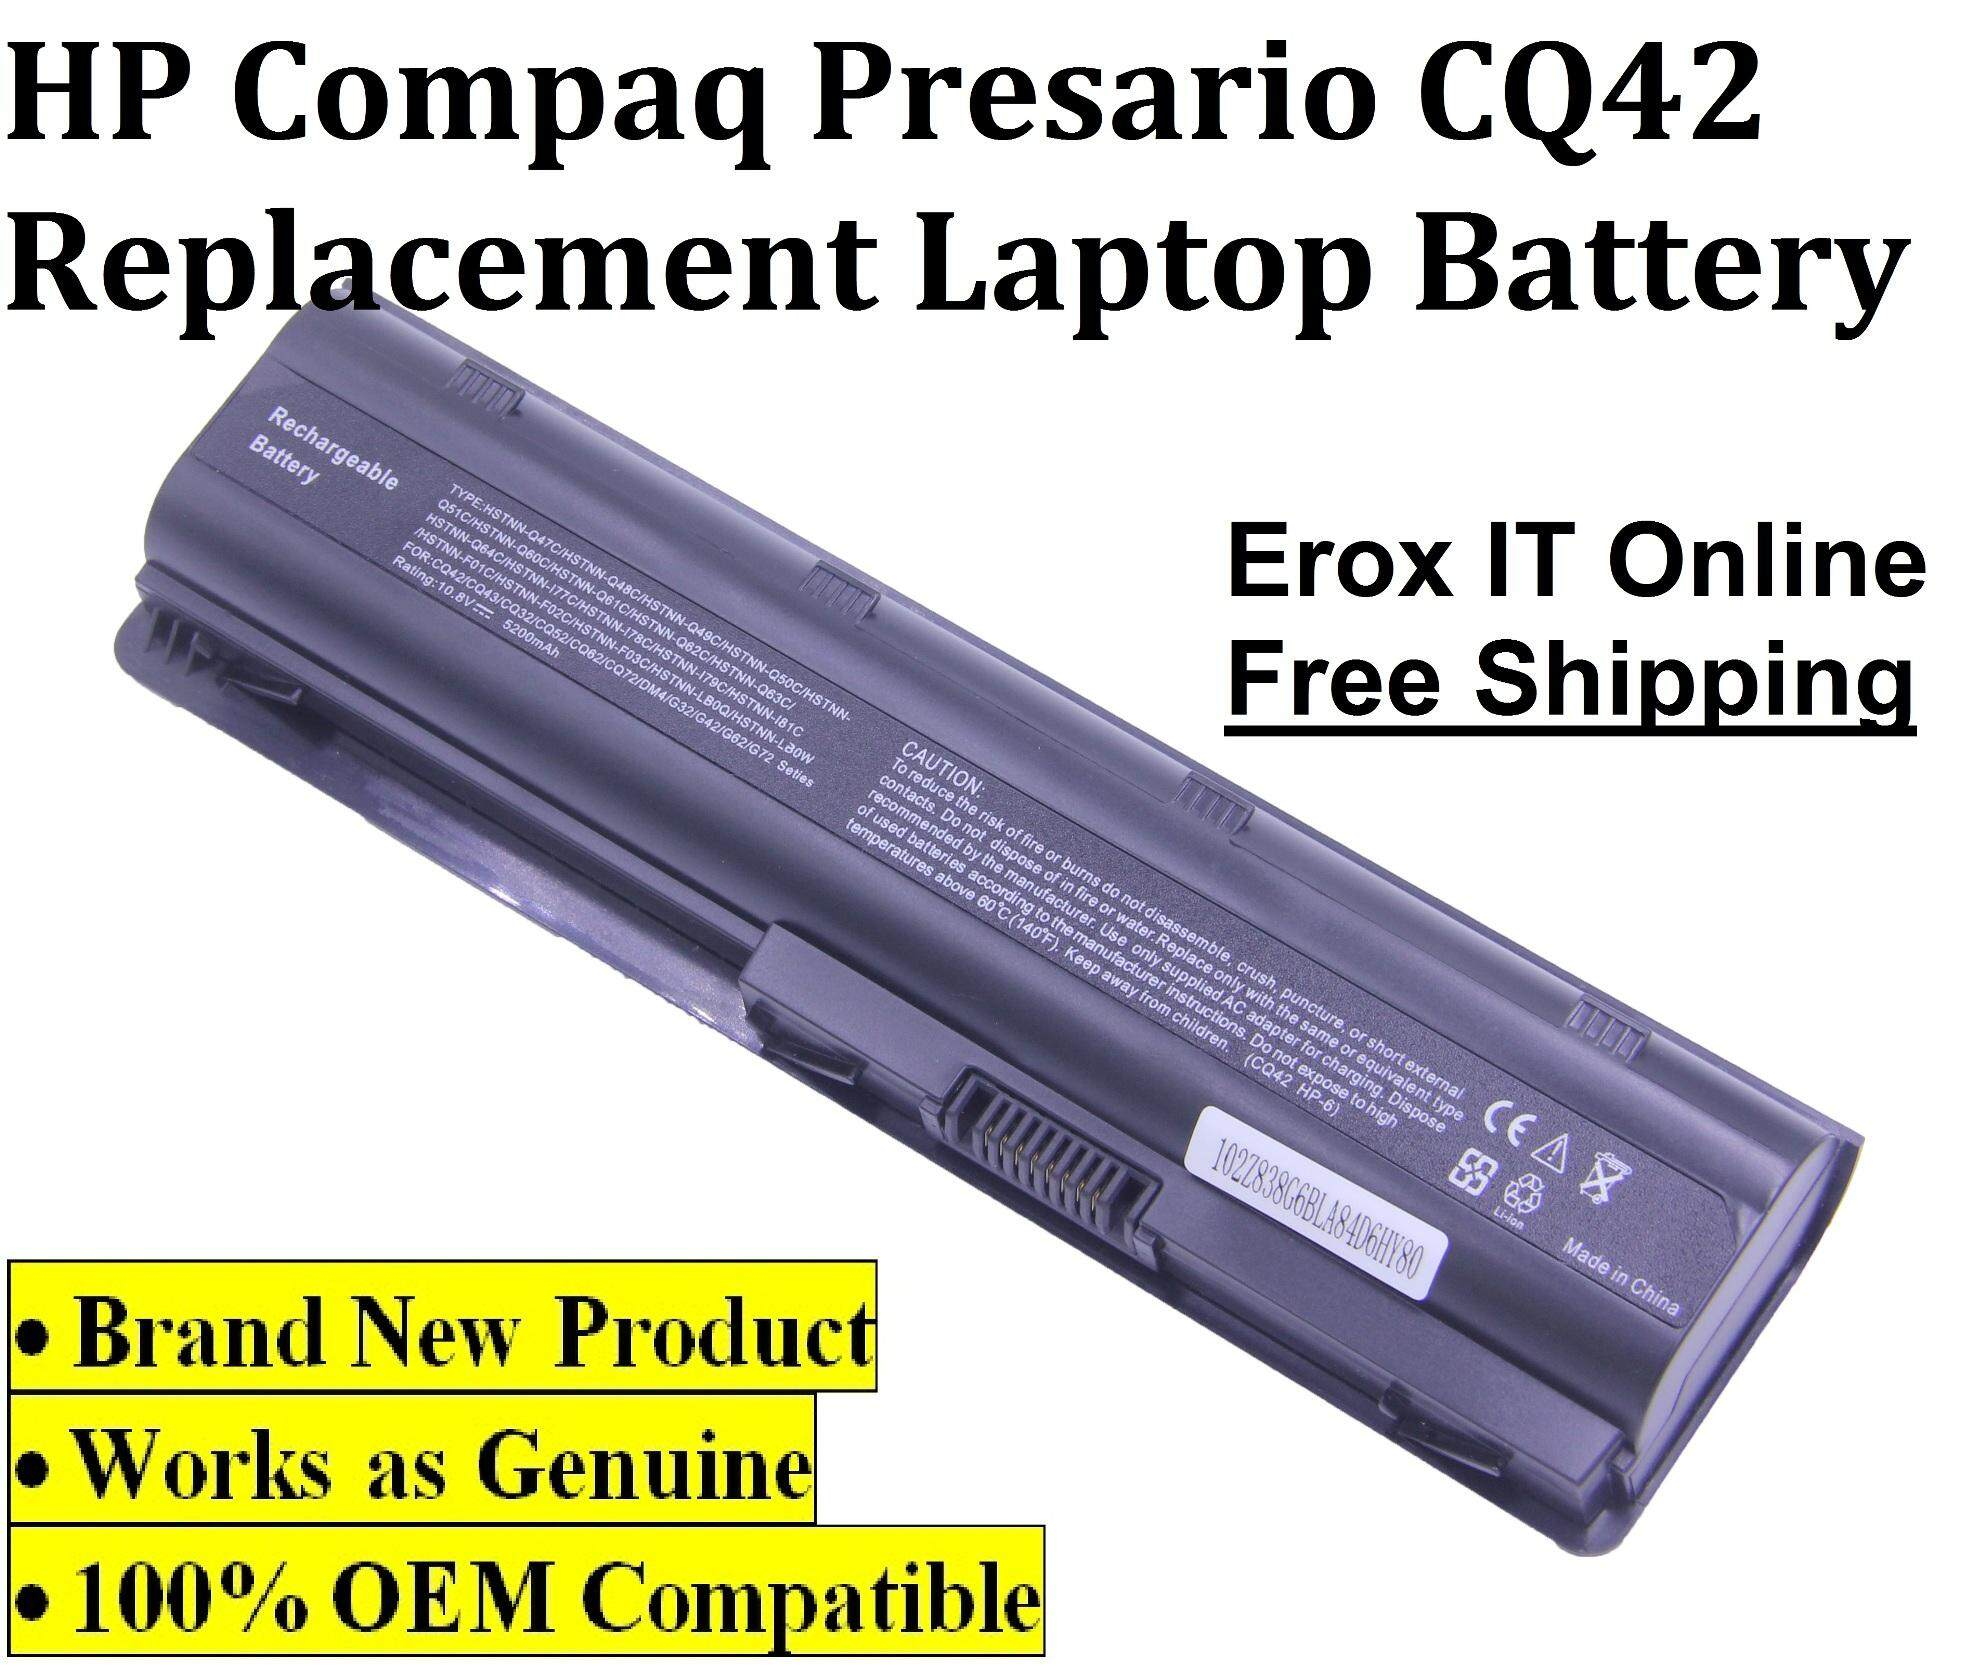 Replacement Battery for HP Pavilion DM4-3001TX /HP CQ42 Replacement Battery Malaysia